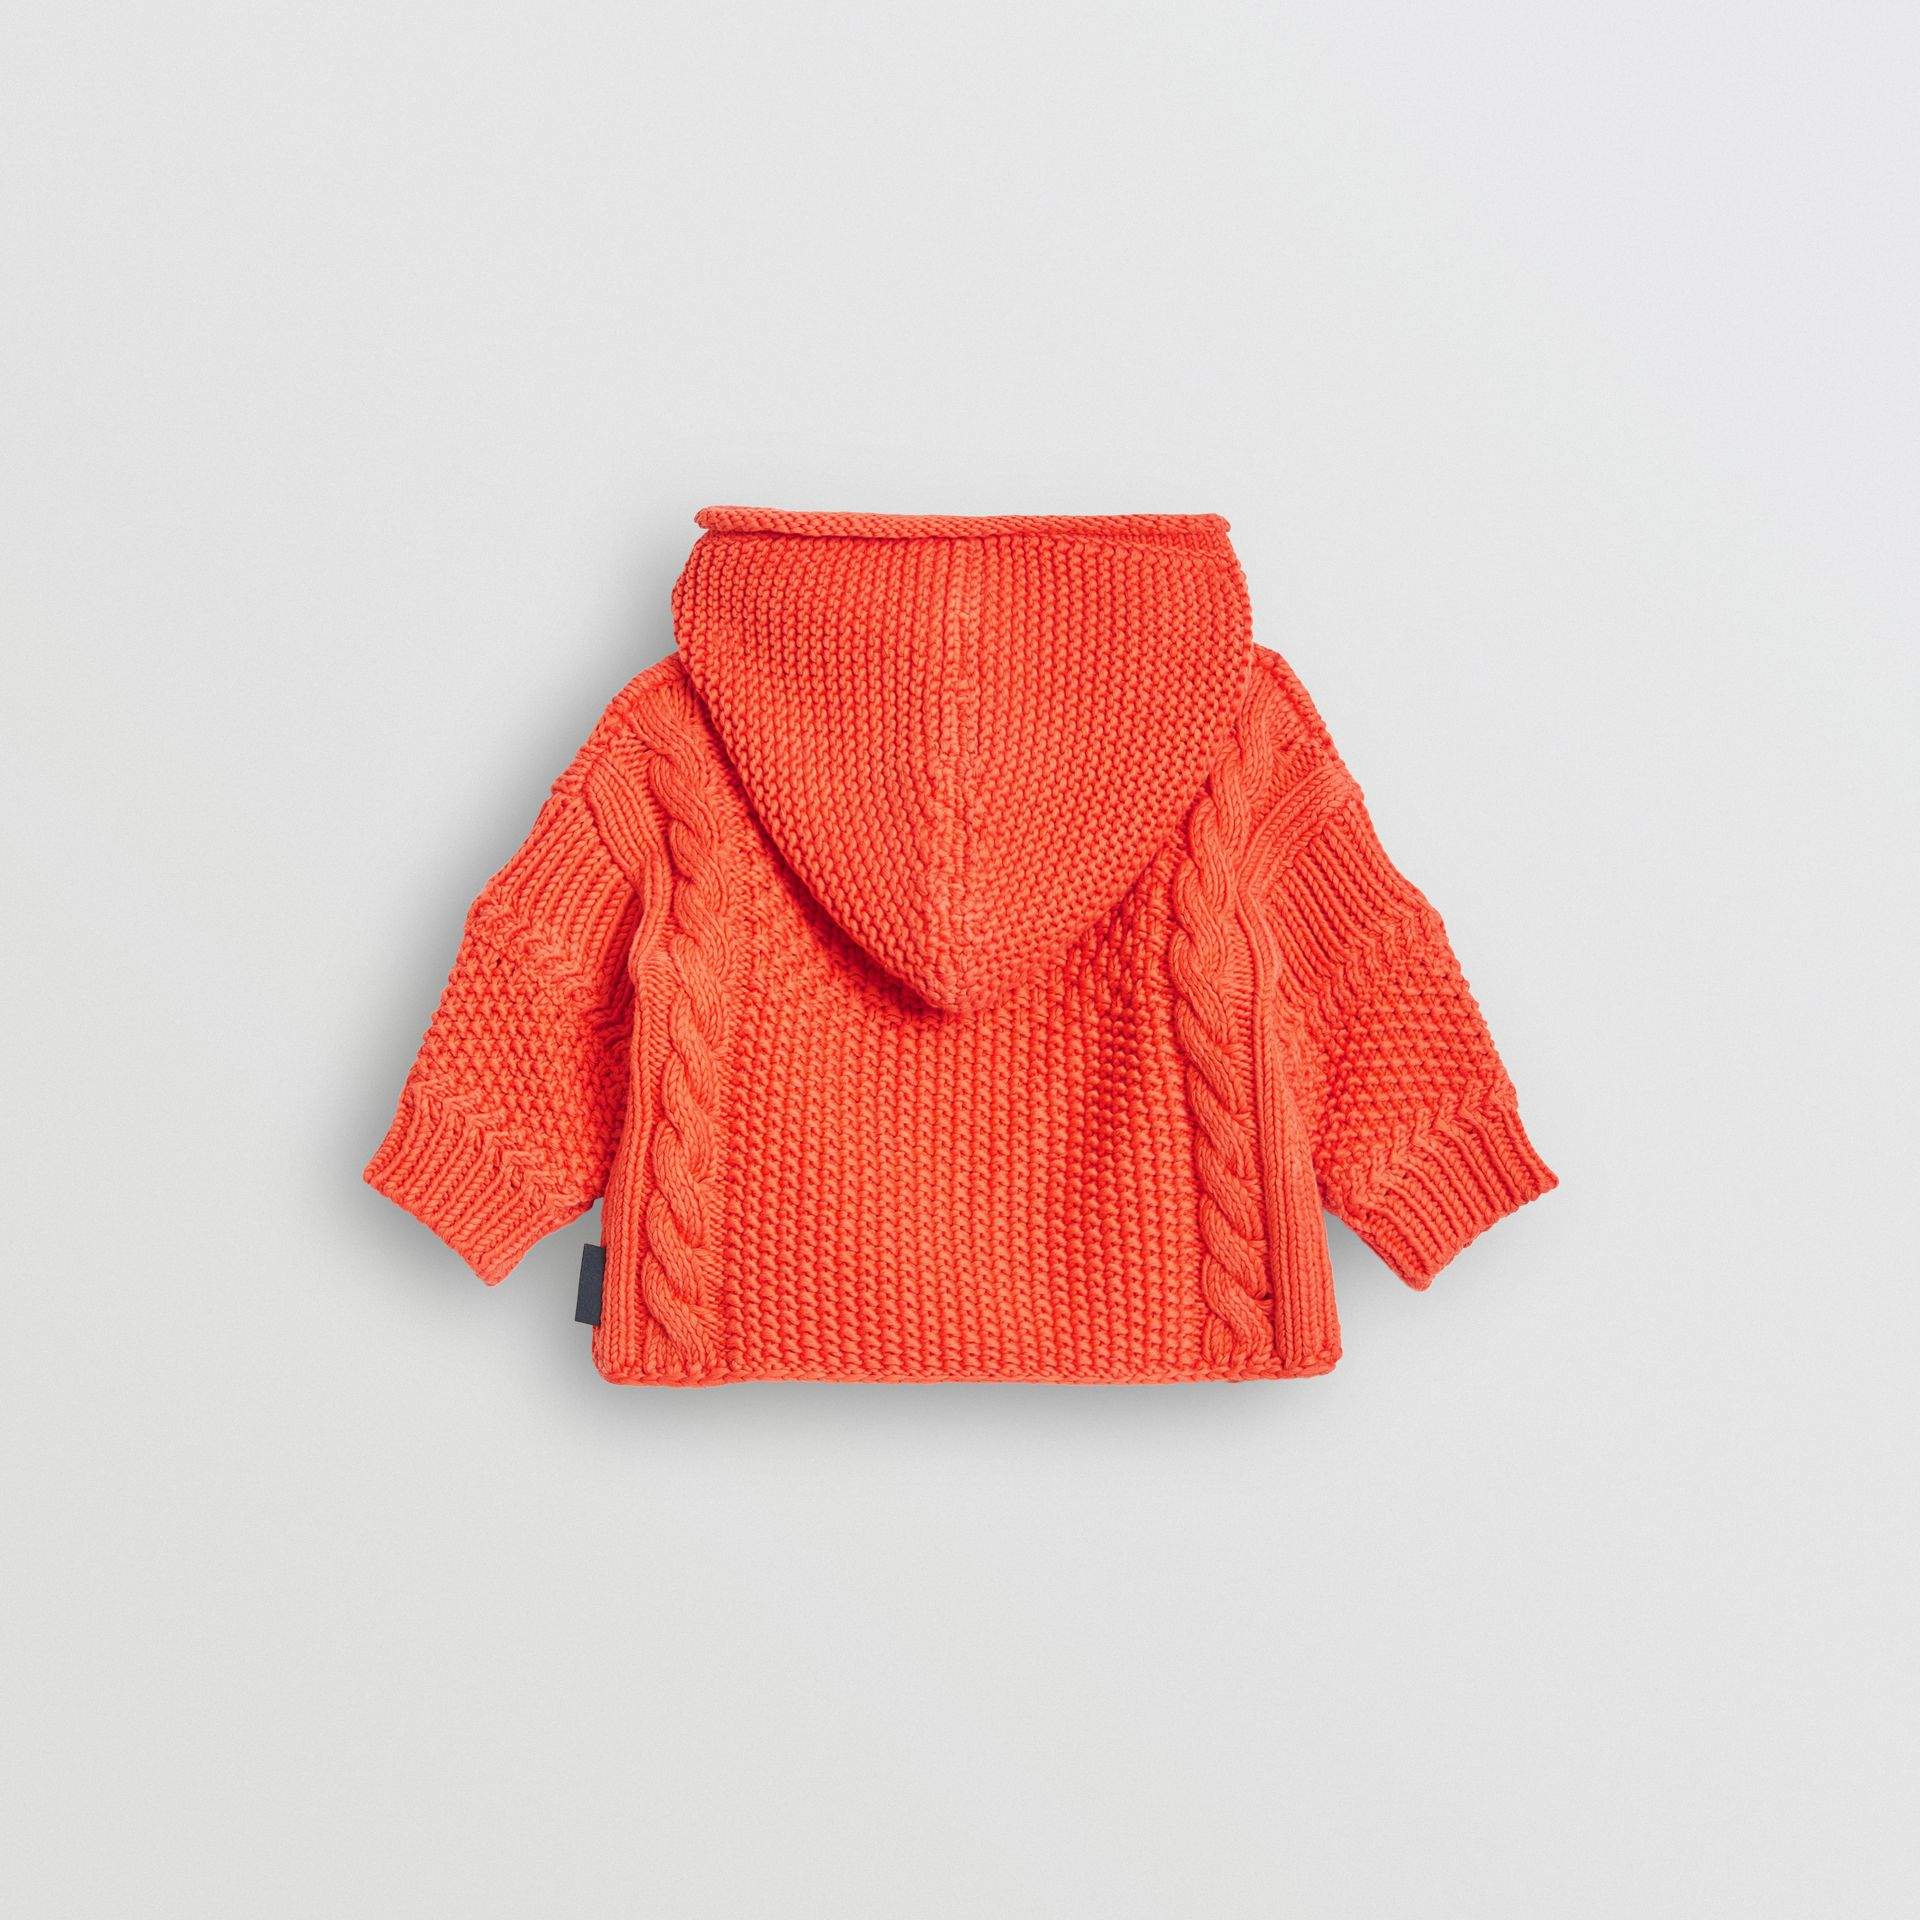 Contrast Knit Cotton Hooded Jacket in Orange Red - Children | Burberry - gallery image 3